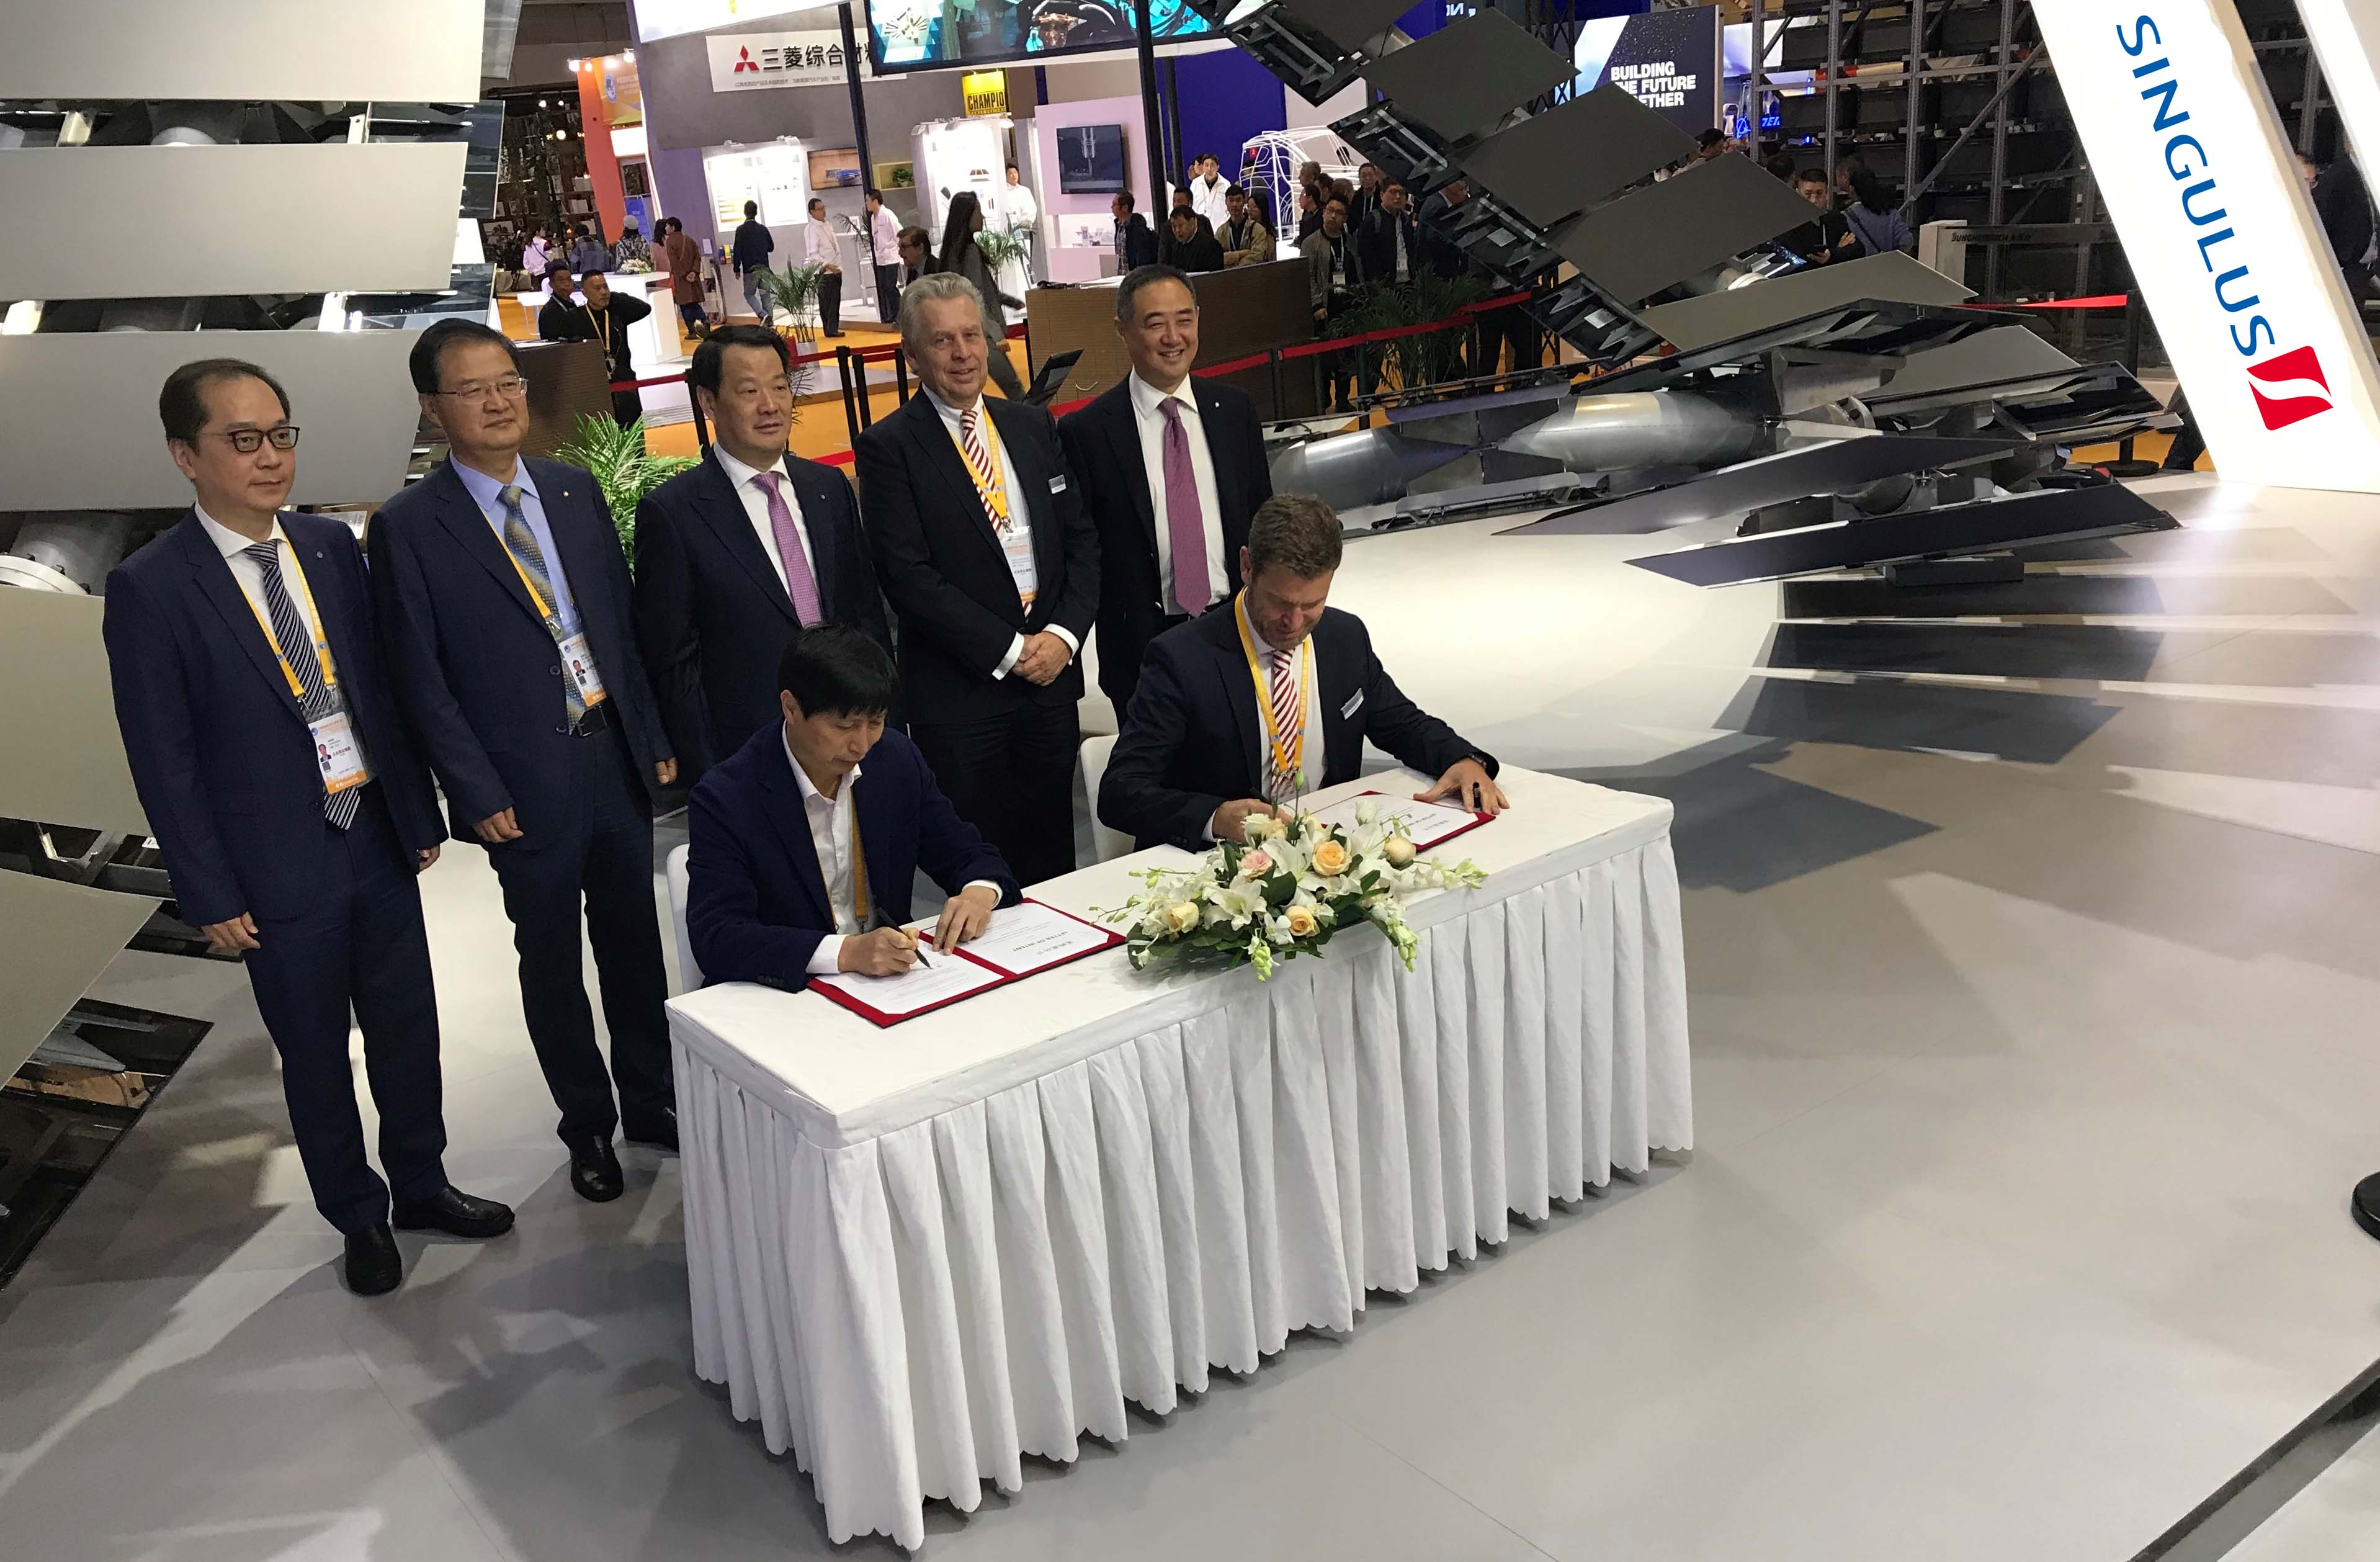 SINGULUS TECHNOLOGIES AG: Signing Ceremony during the Chinese Trade Fair CIIE in Shanghai